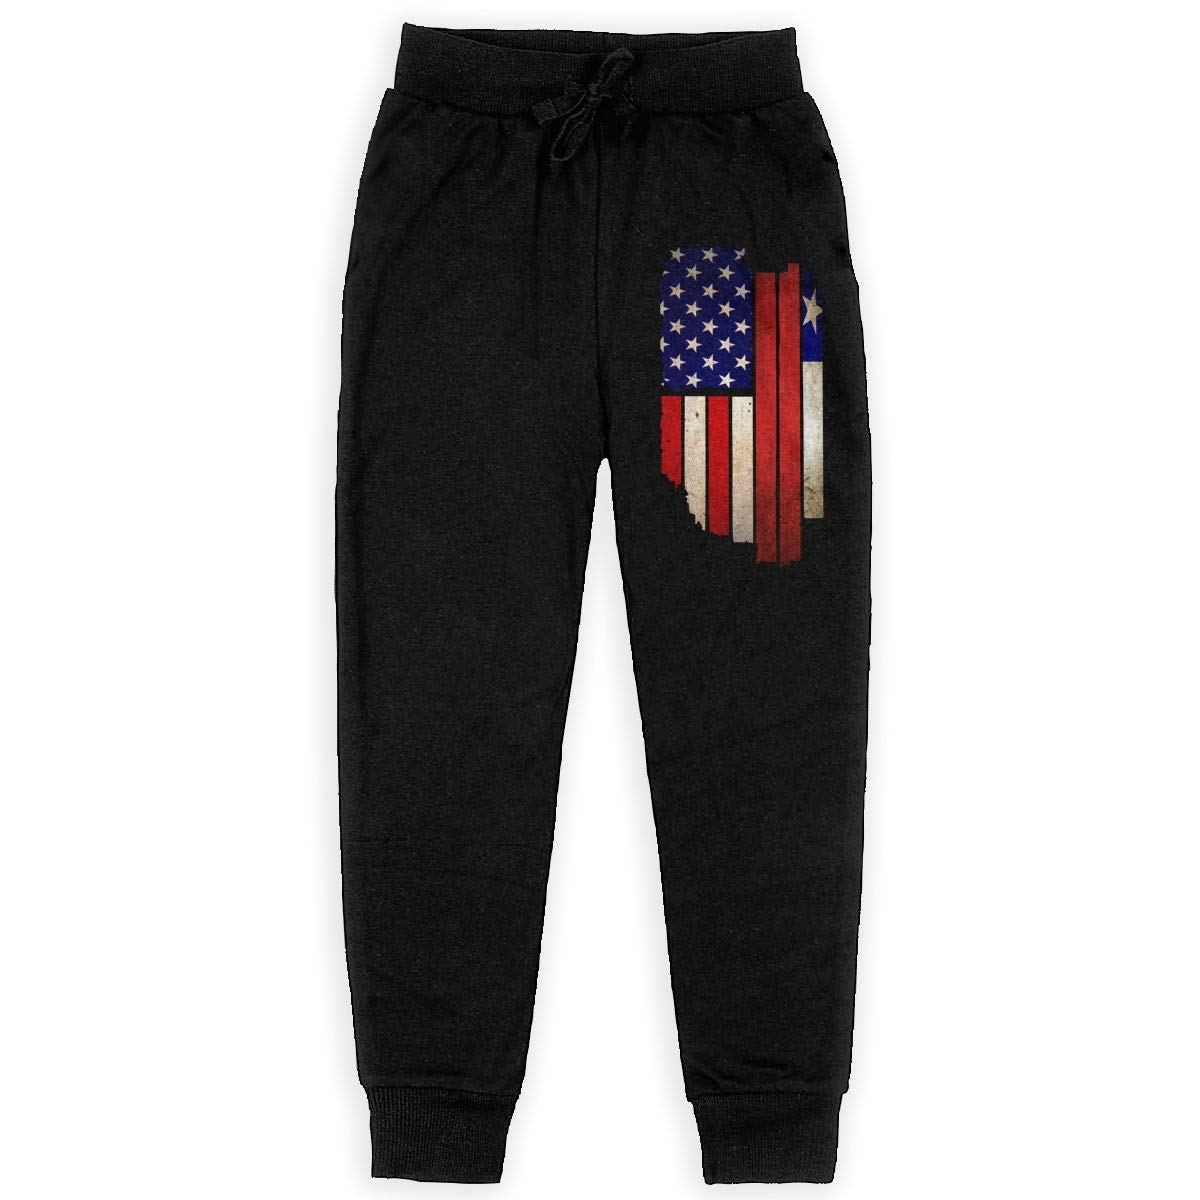 Girls Trousers Girls for Teen Girls Vintage USA Chile Flag Soft//Cozy Sweatpants